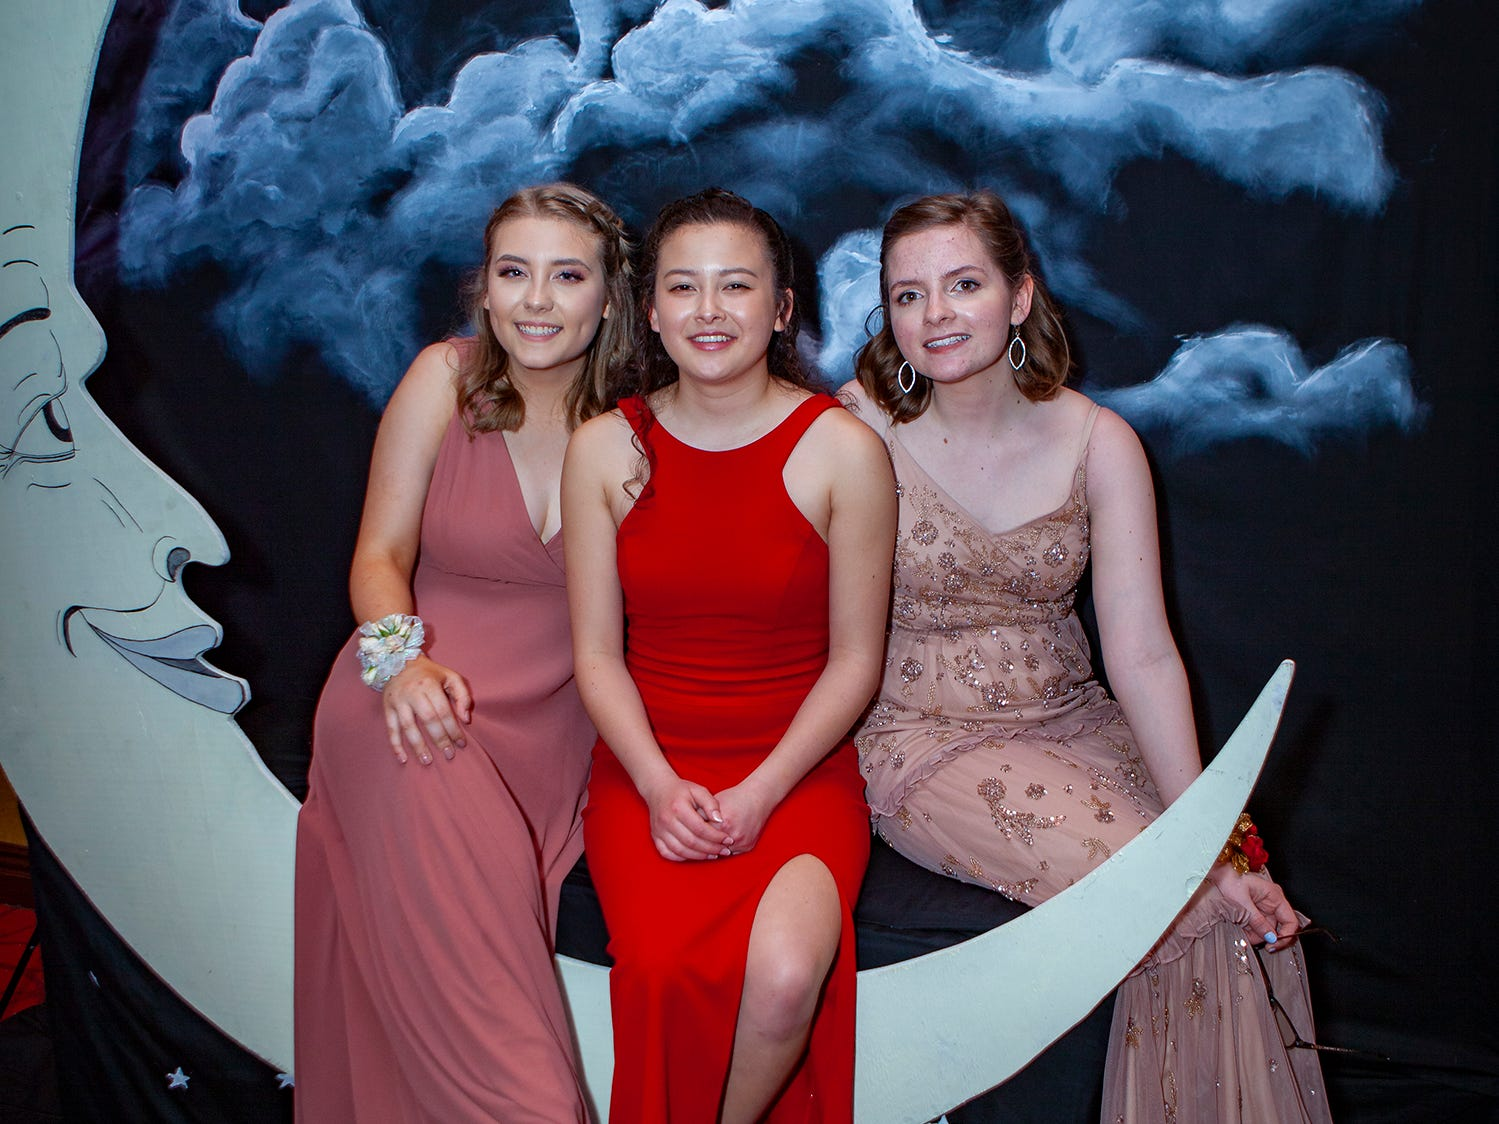 Helen Grace Daniel, Natalie Peruzzi and Bella Goodnight at Central Magnet School's prom Saturday, April 6, 2019 at Embassy Suites in Murfreesboro.